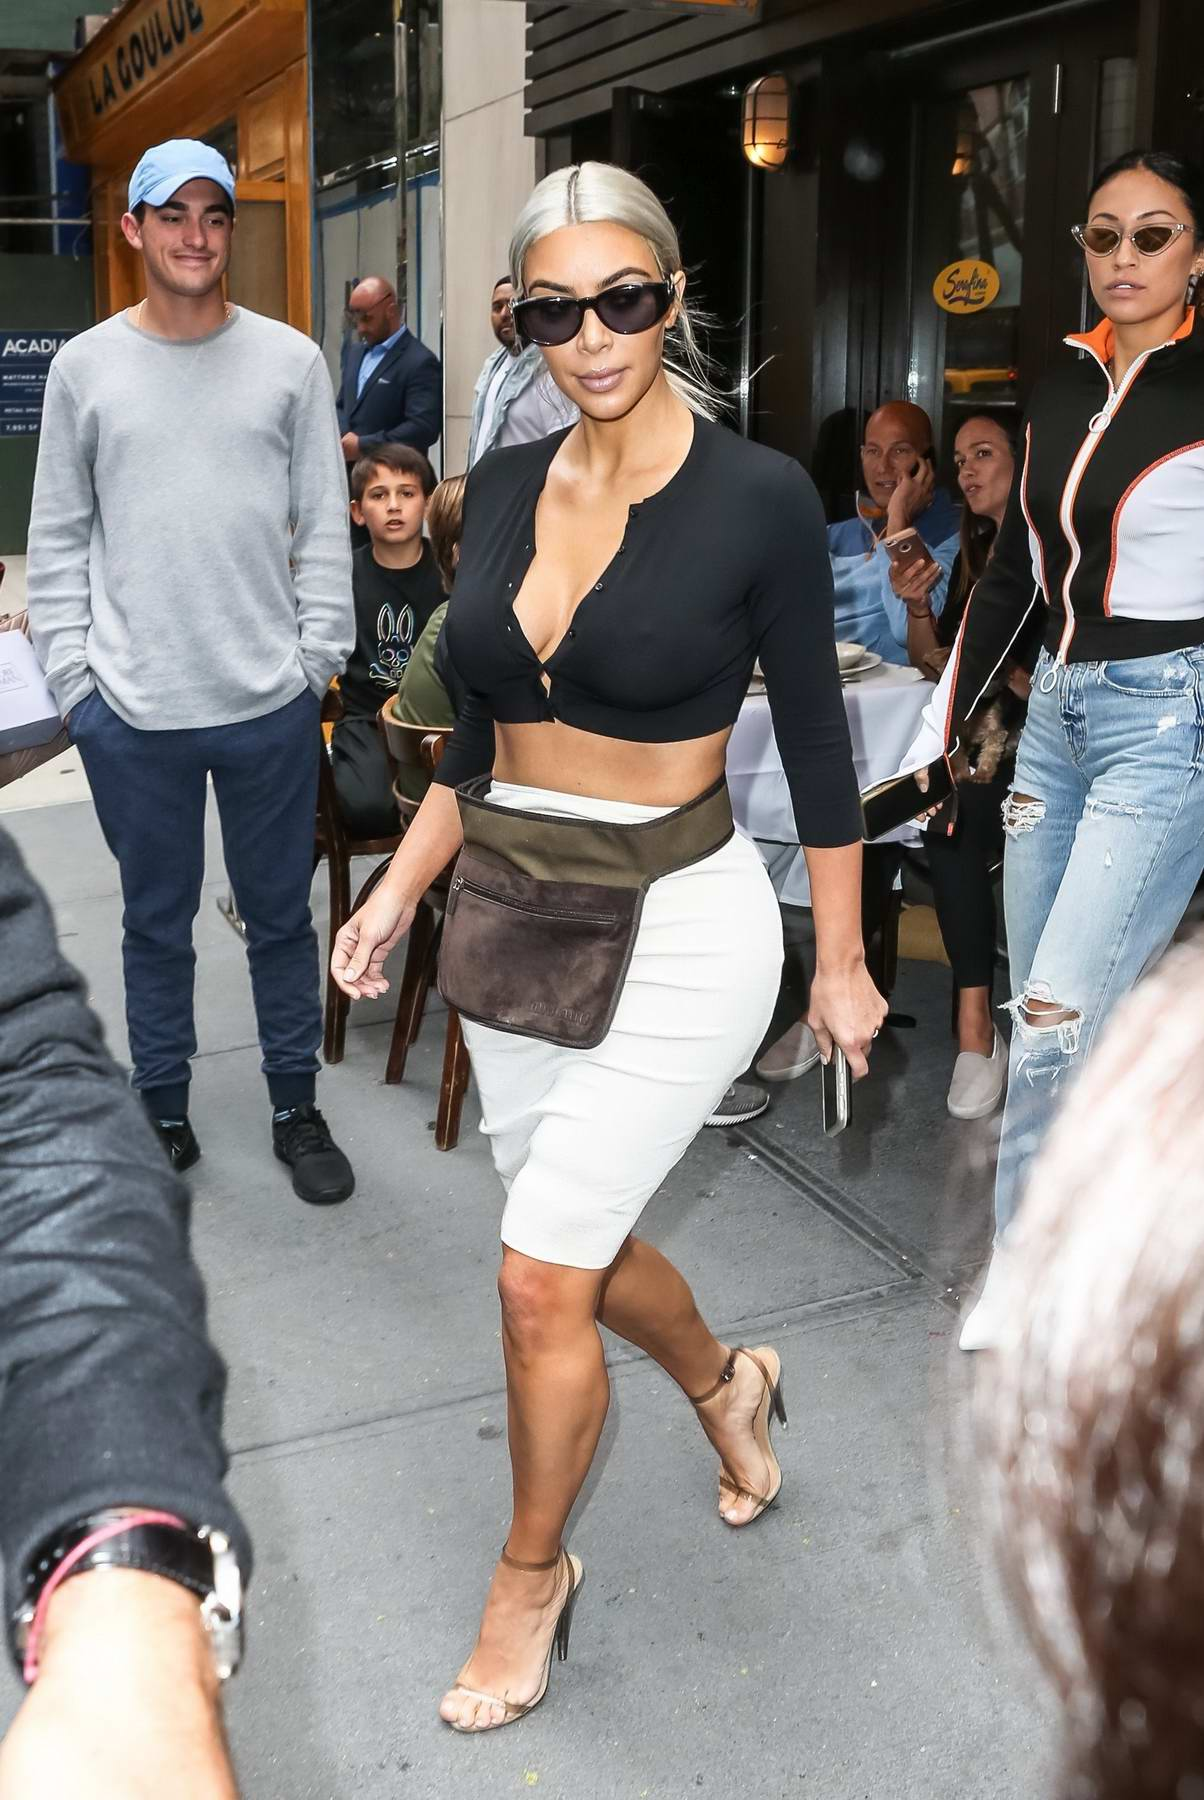 Kim Kardashian leaving Serafina in New York City